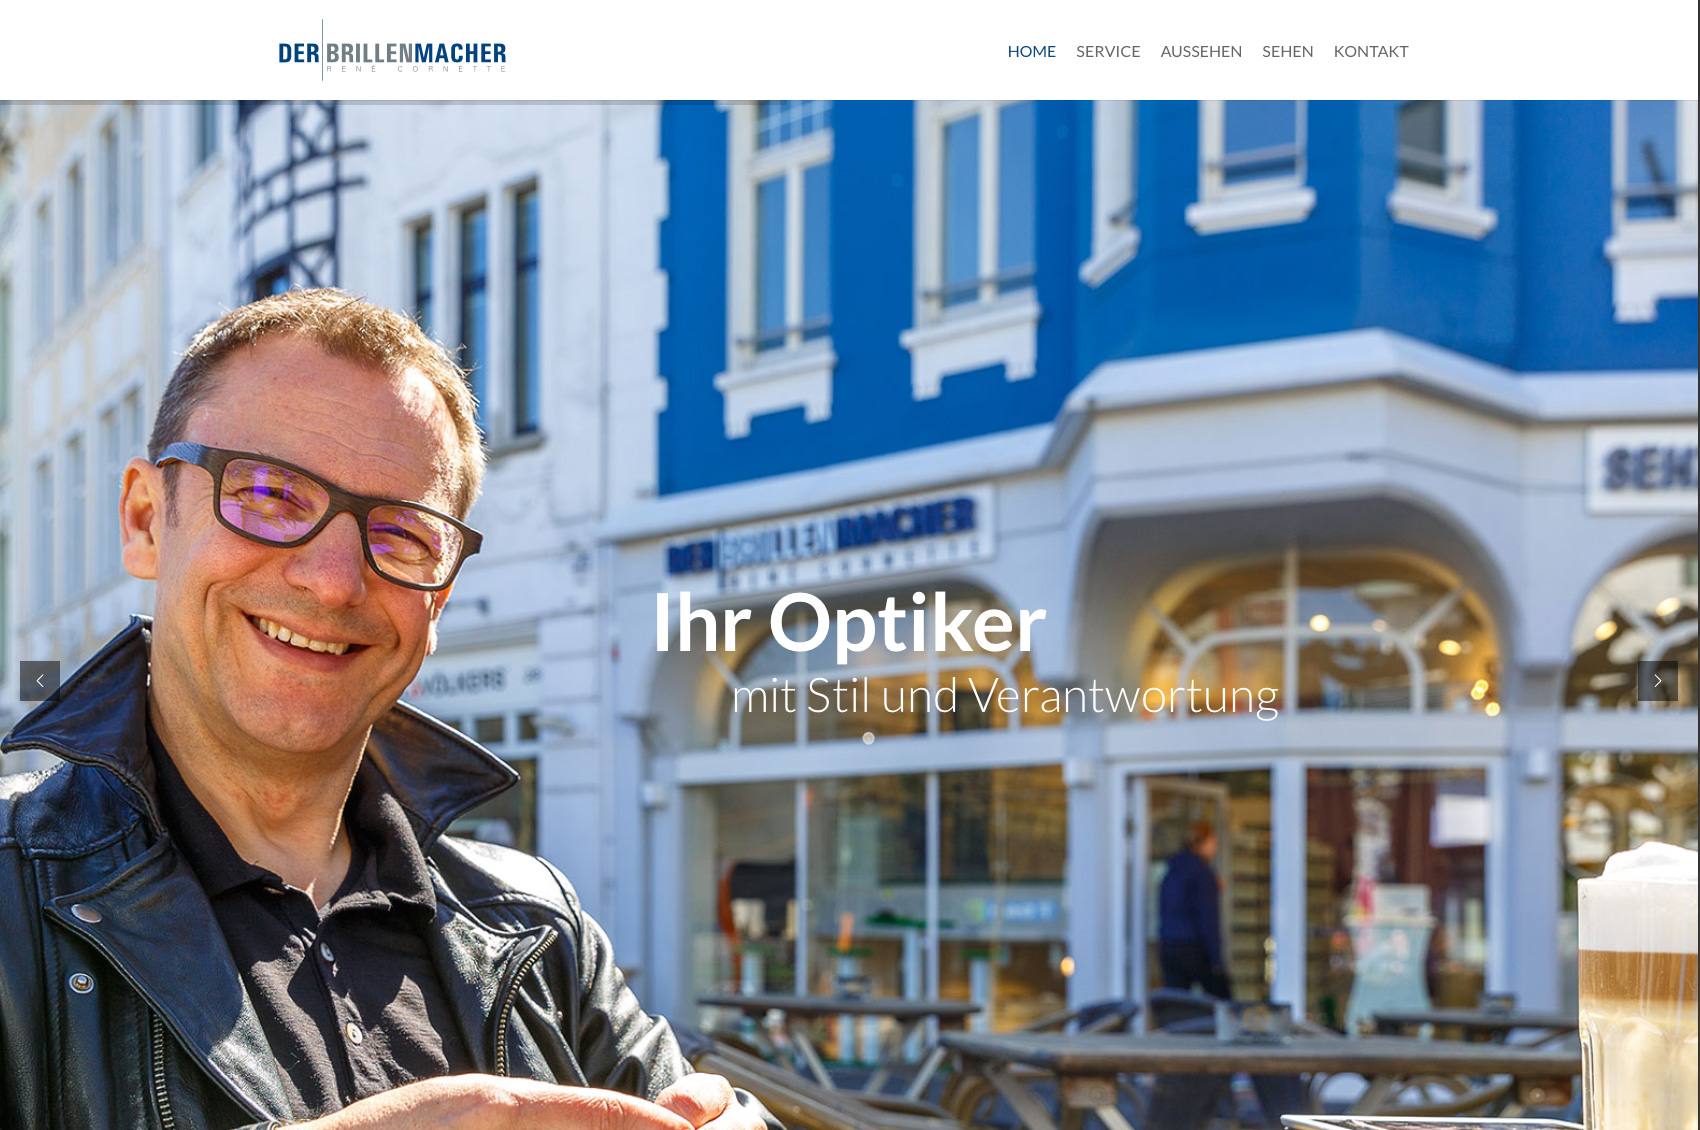 Website Der Brillenmacher, Optiker in Bonn